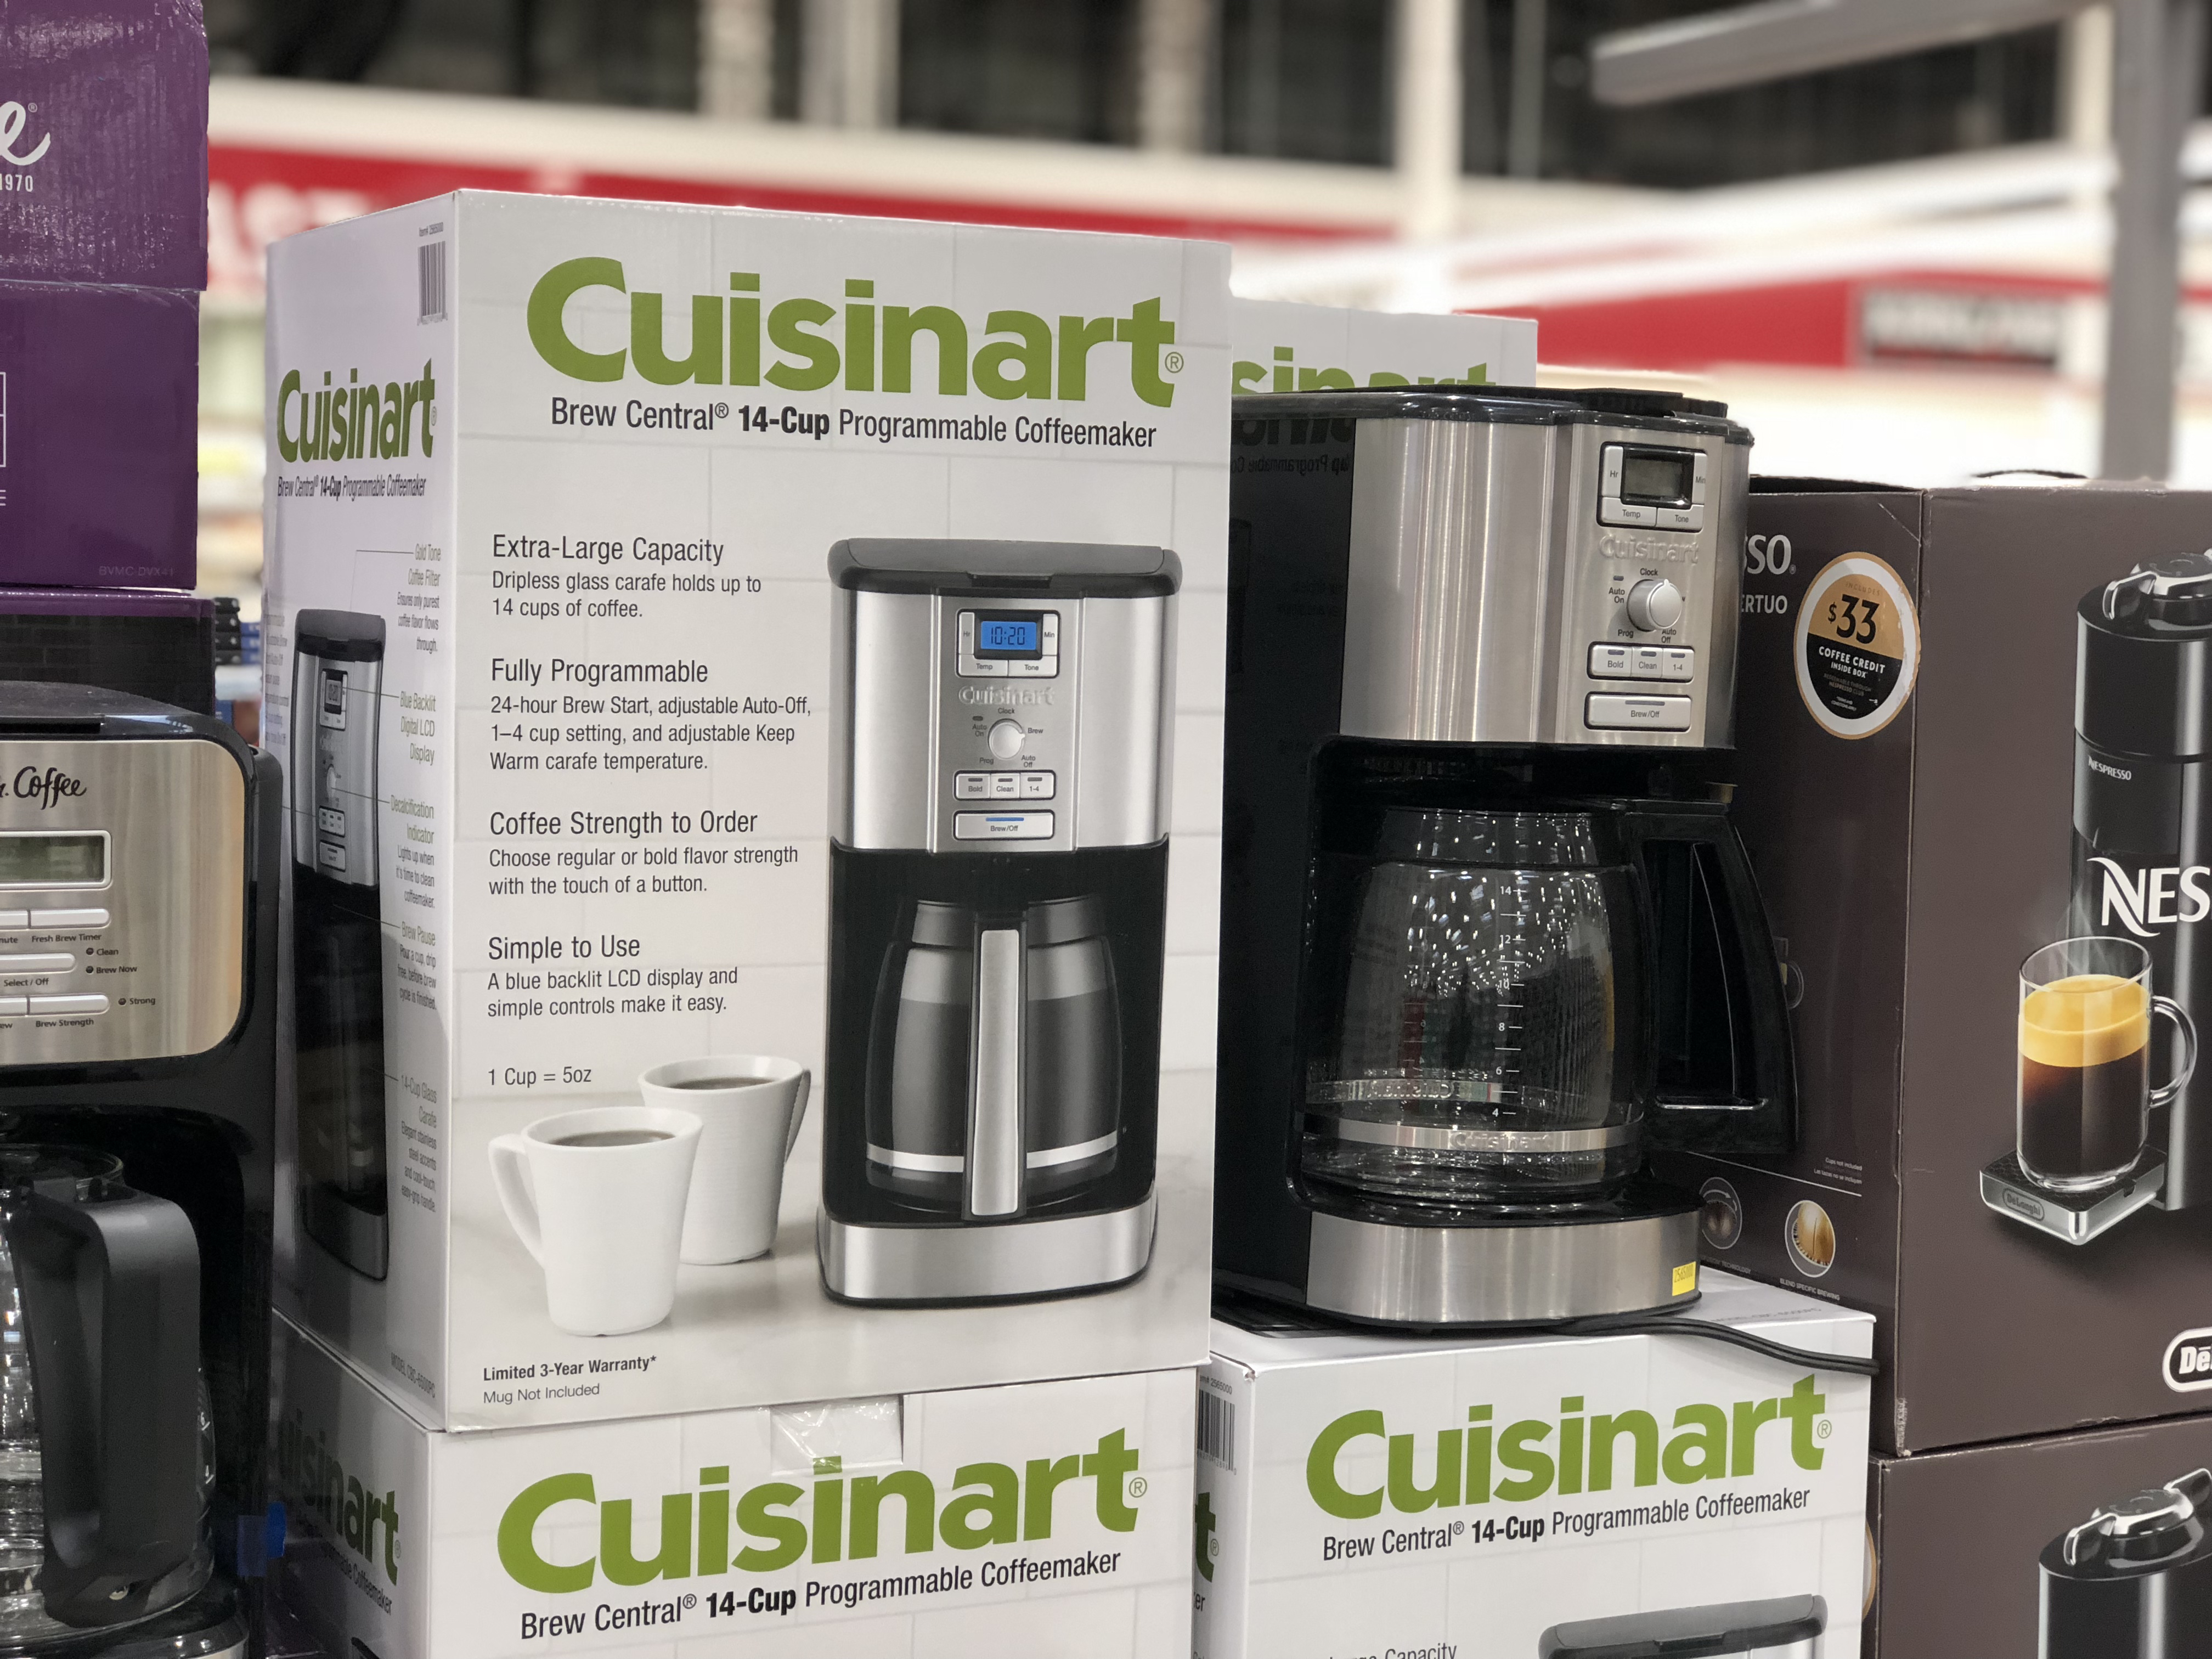 Cuisinart Brew Central coffeemaker at Costco